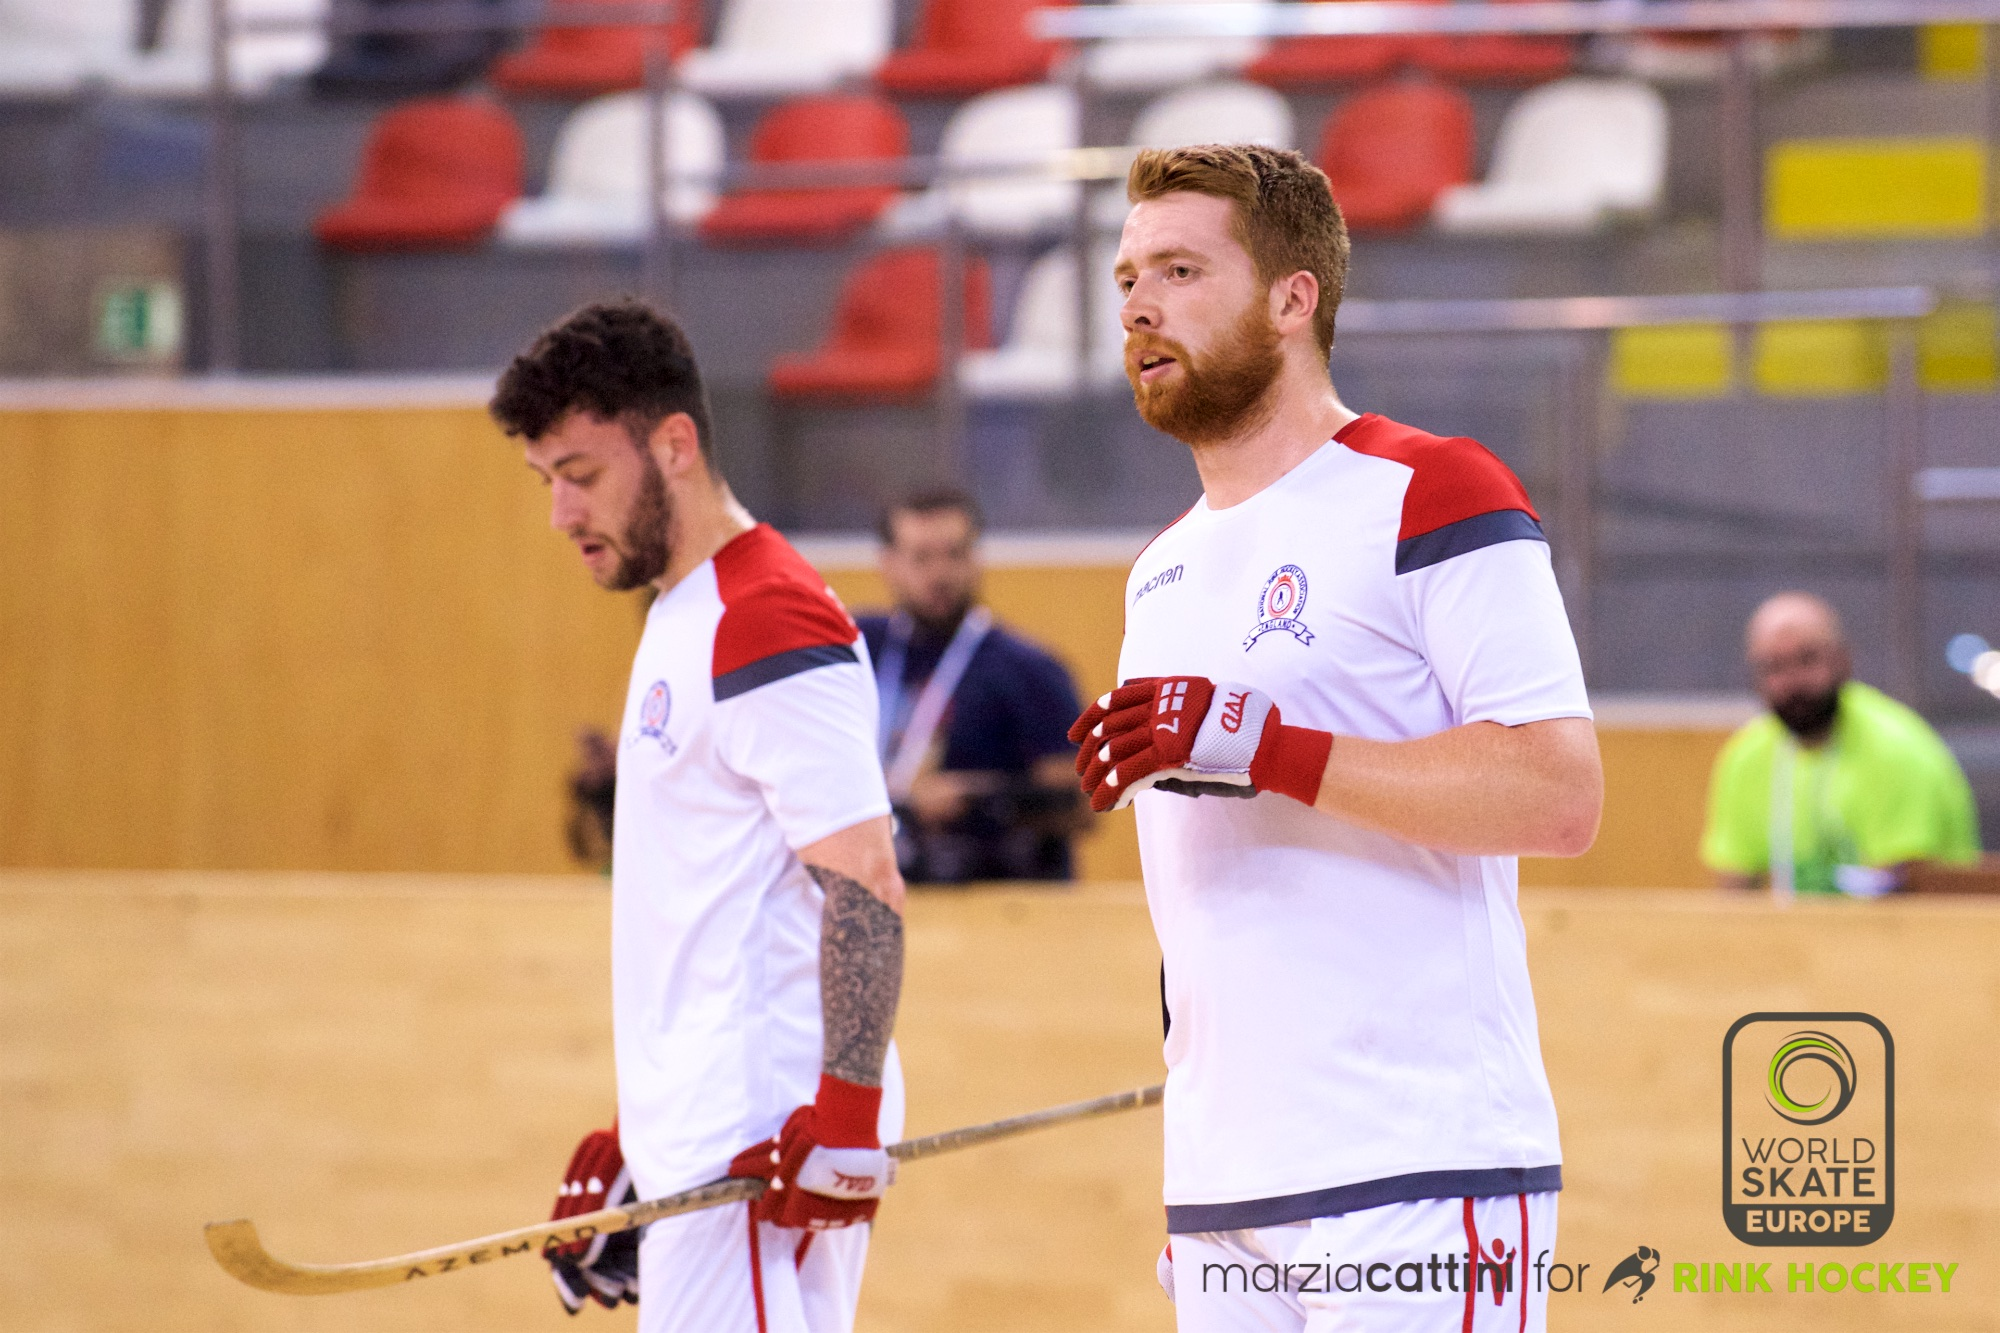 PHOTOS – 21/07/2018 - EUROHOCKEY CORUNA 2018 - Match #33 - Switzerland x Germany – Photos by Marzia Cattini